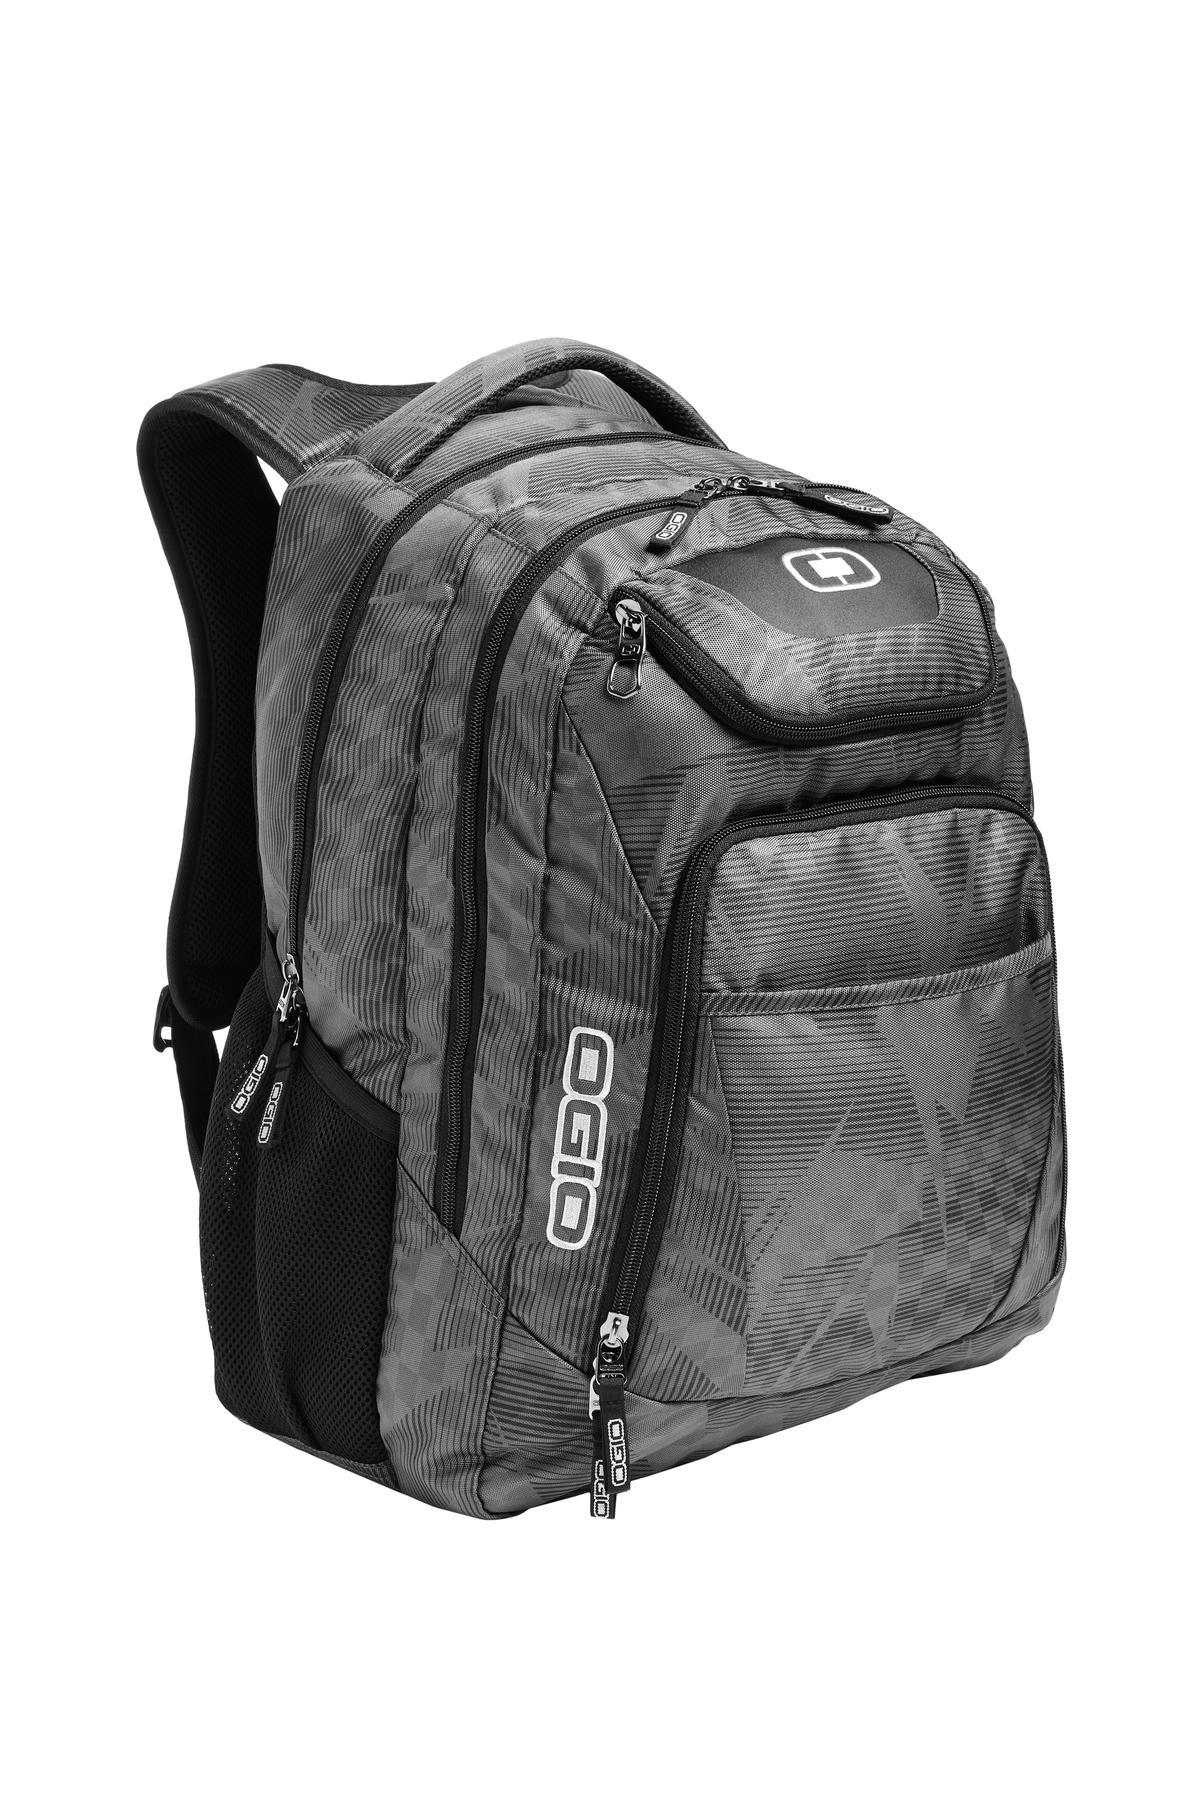 Race Day/ Silver - OGIO 411069